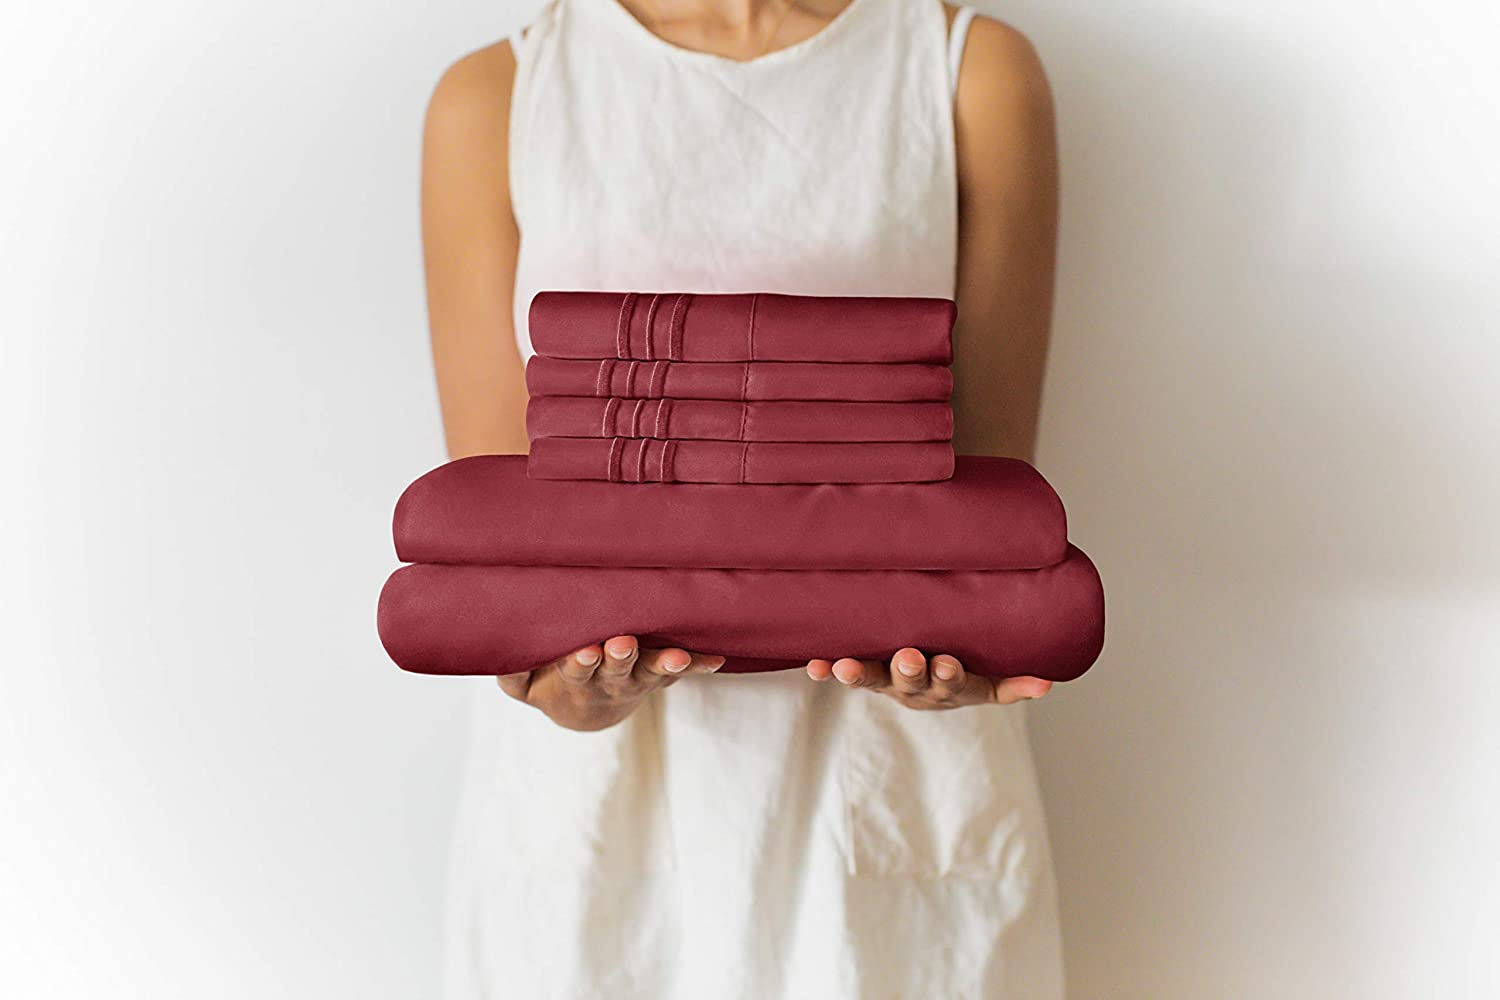 Full Size Sheet Set - 6 Piece Set - Hotel Luxury Bed Sheets - Extra Soft - Deep Pockets - Easy Fit - Breathable & Cooling Sheets - Wrinkle Free - Comfy - Burgundy Bed Sheets - Fulls Sheets - 6 PC: Home & Kitchen